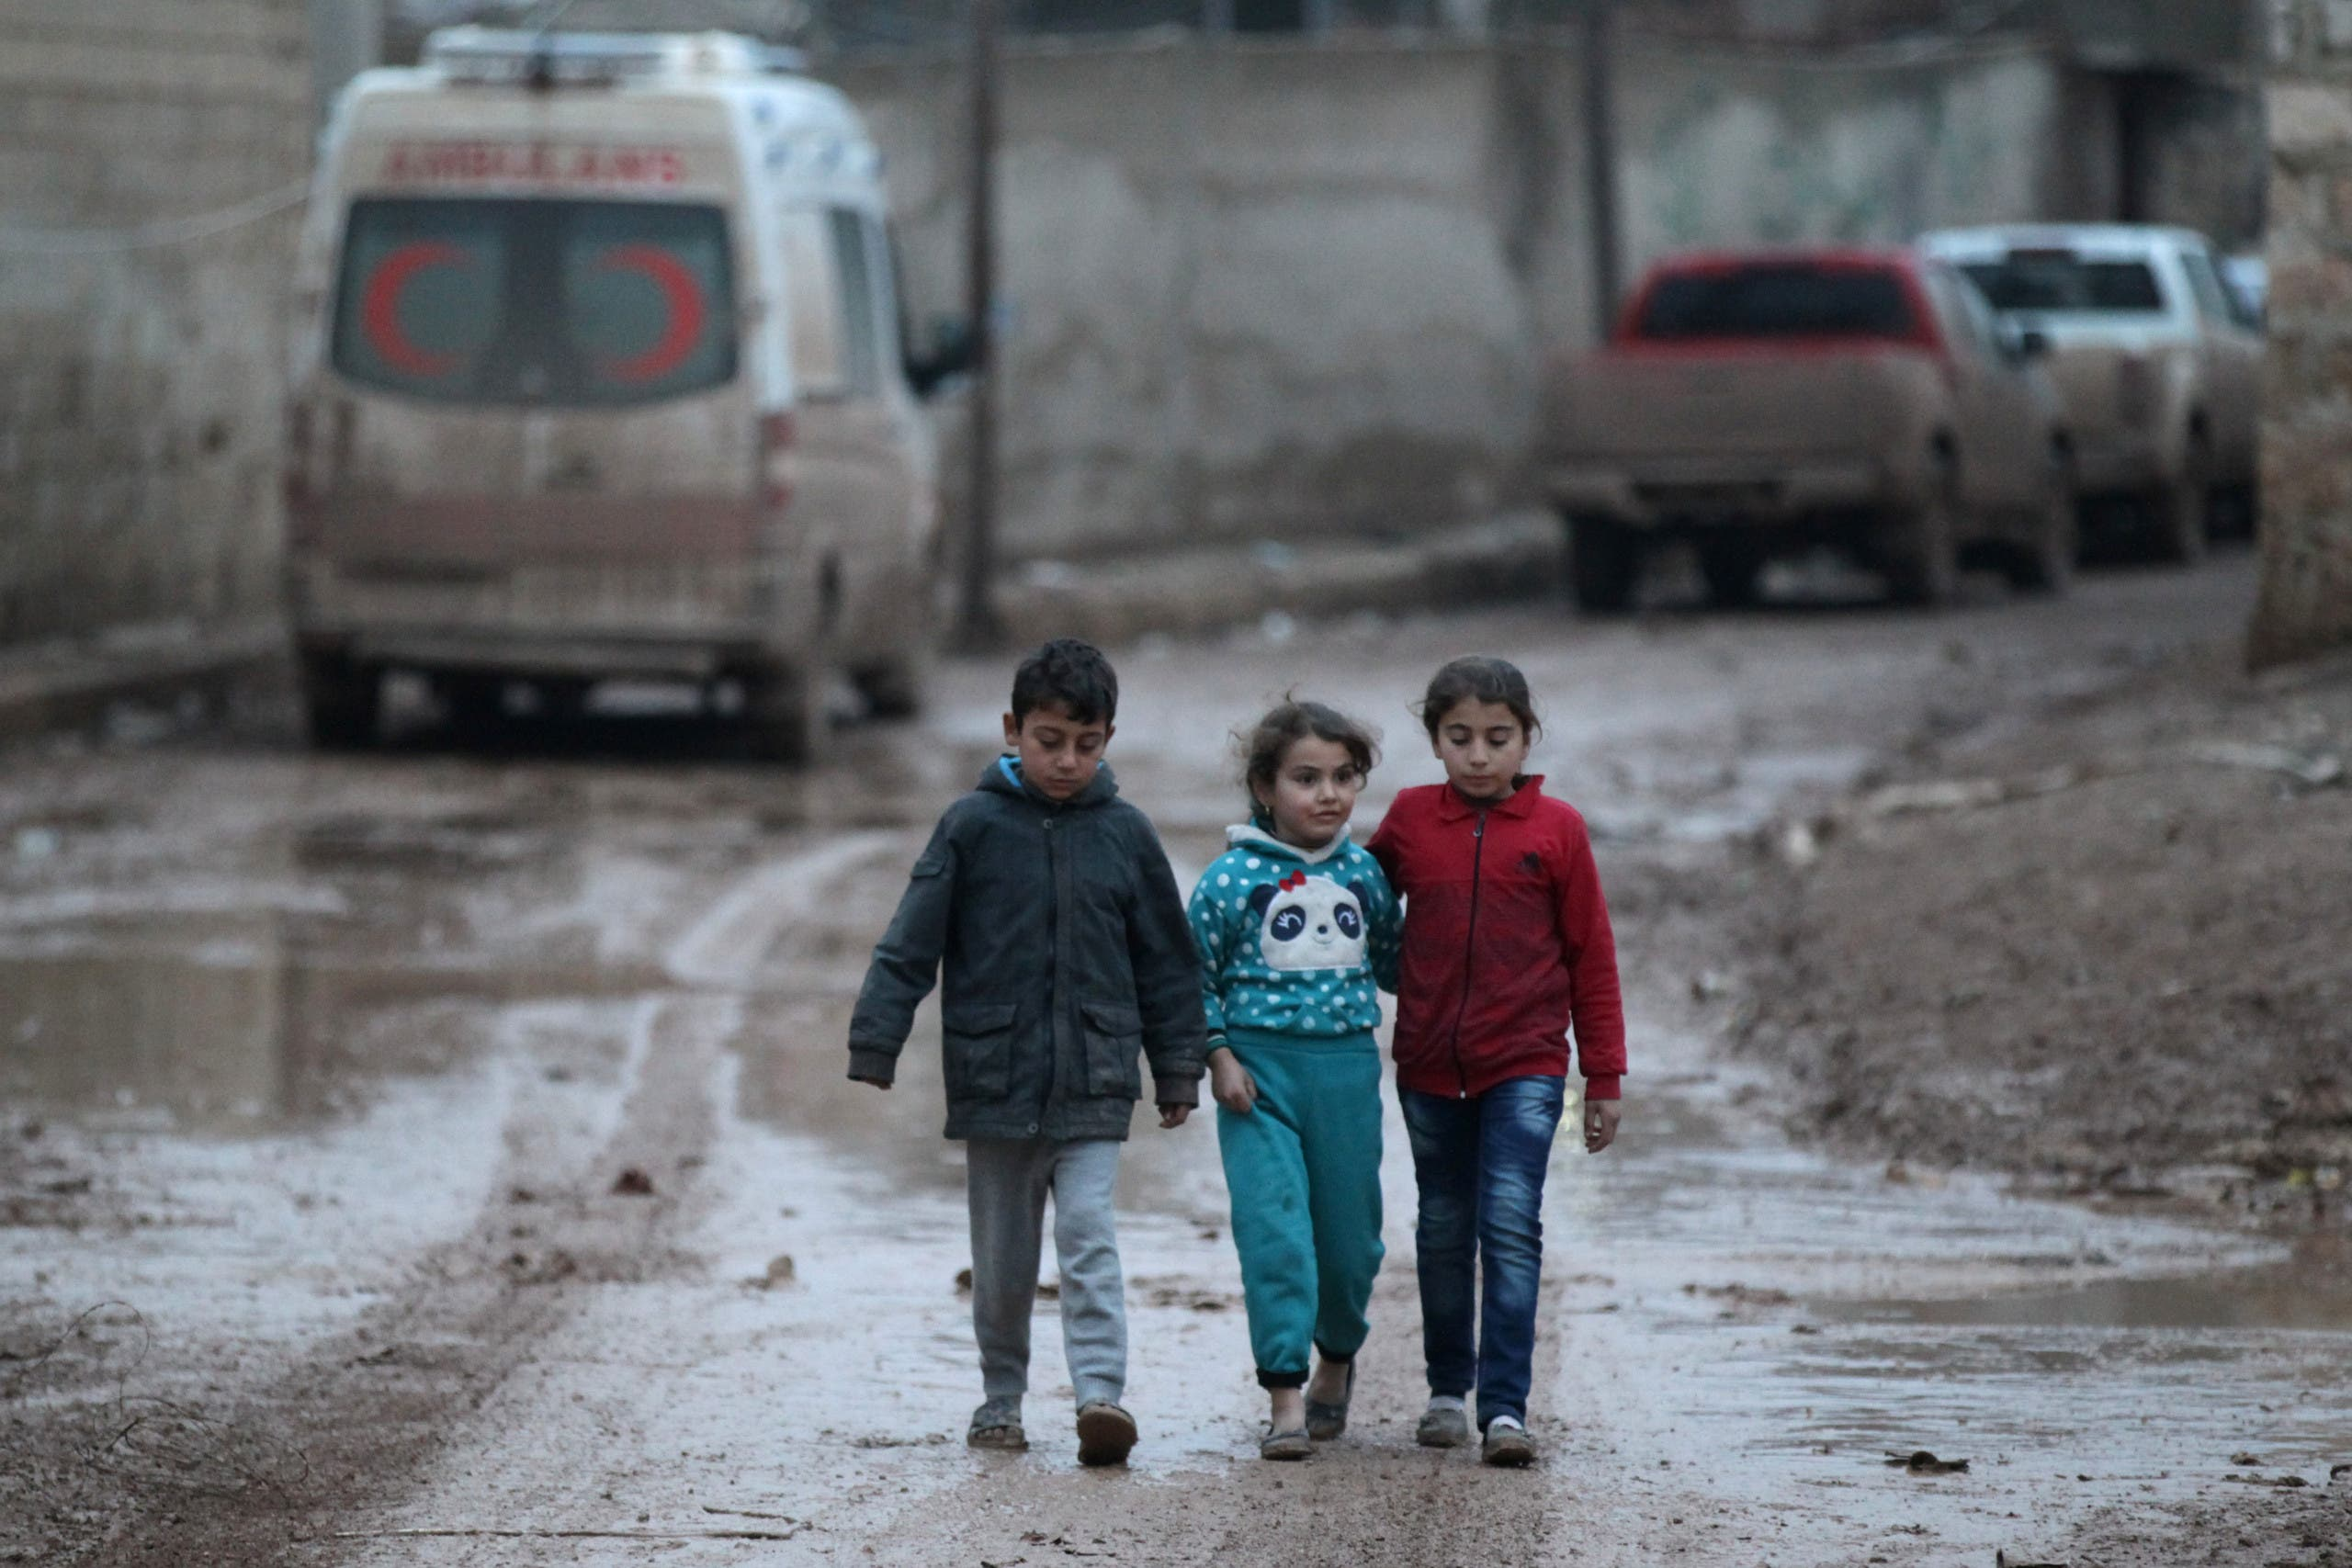 Children walk near a parked ambulance in al-Rai town, northern Aleppo province, Syria December 27, 2016. REUTERS/Khalil Ashawi